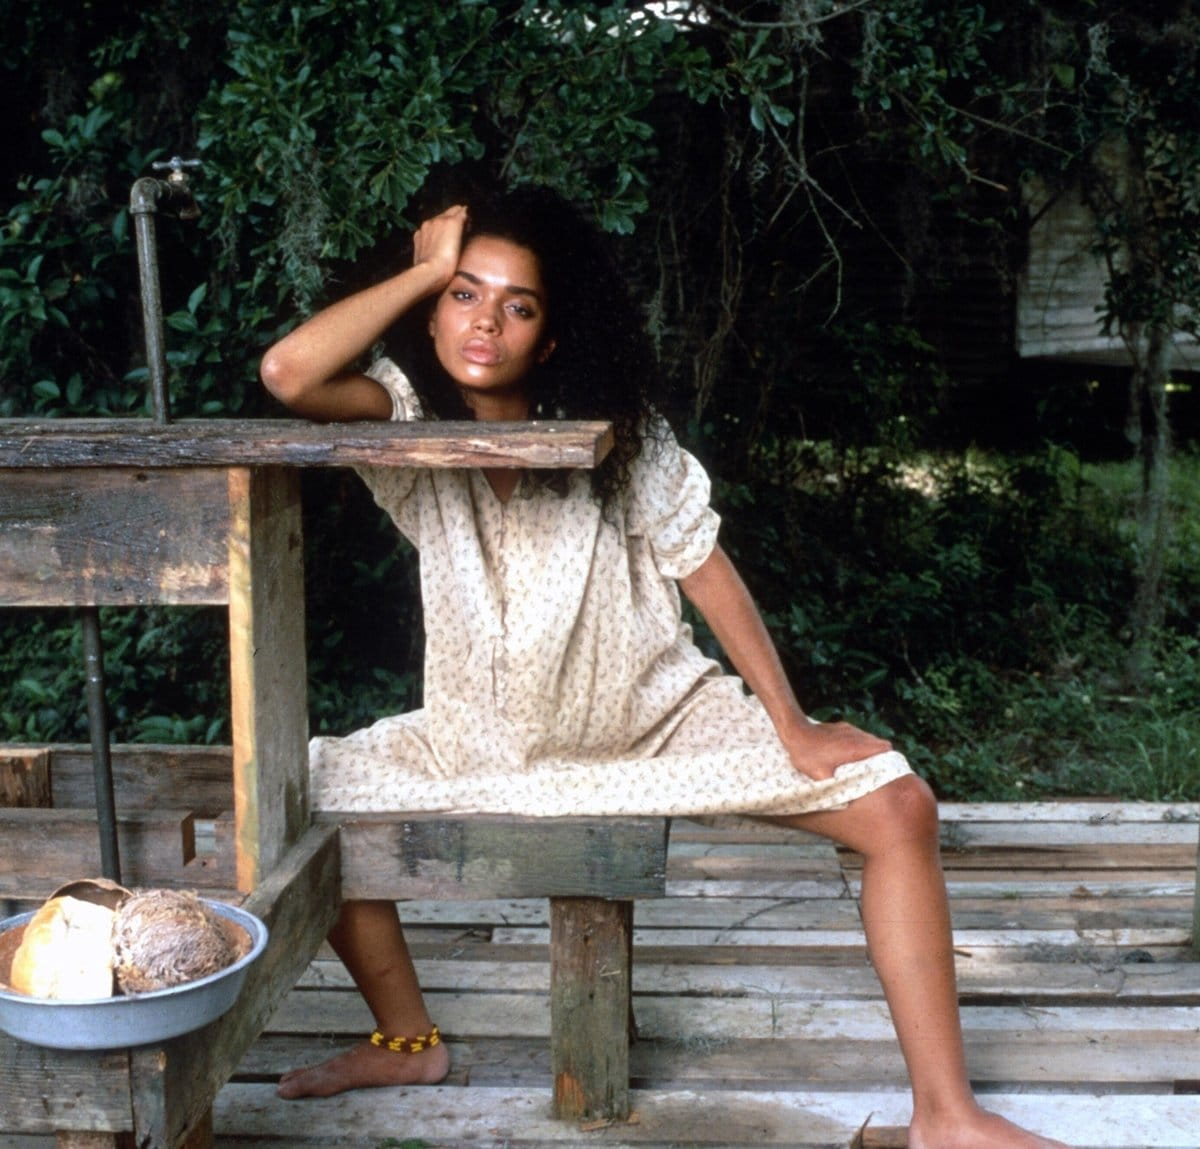 Lisa Bonet was 19 when she played 17-year-old Epiphany Proudfoot in the 1987 American neo-noir psychological horror film Angel Heart